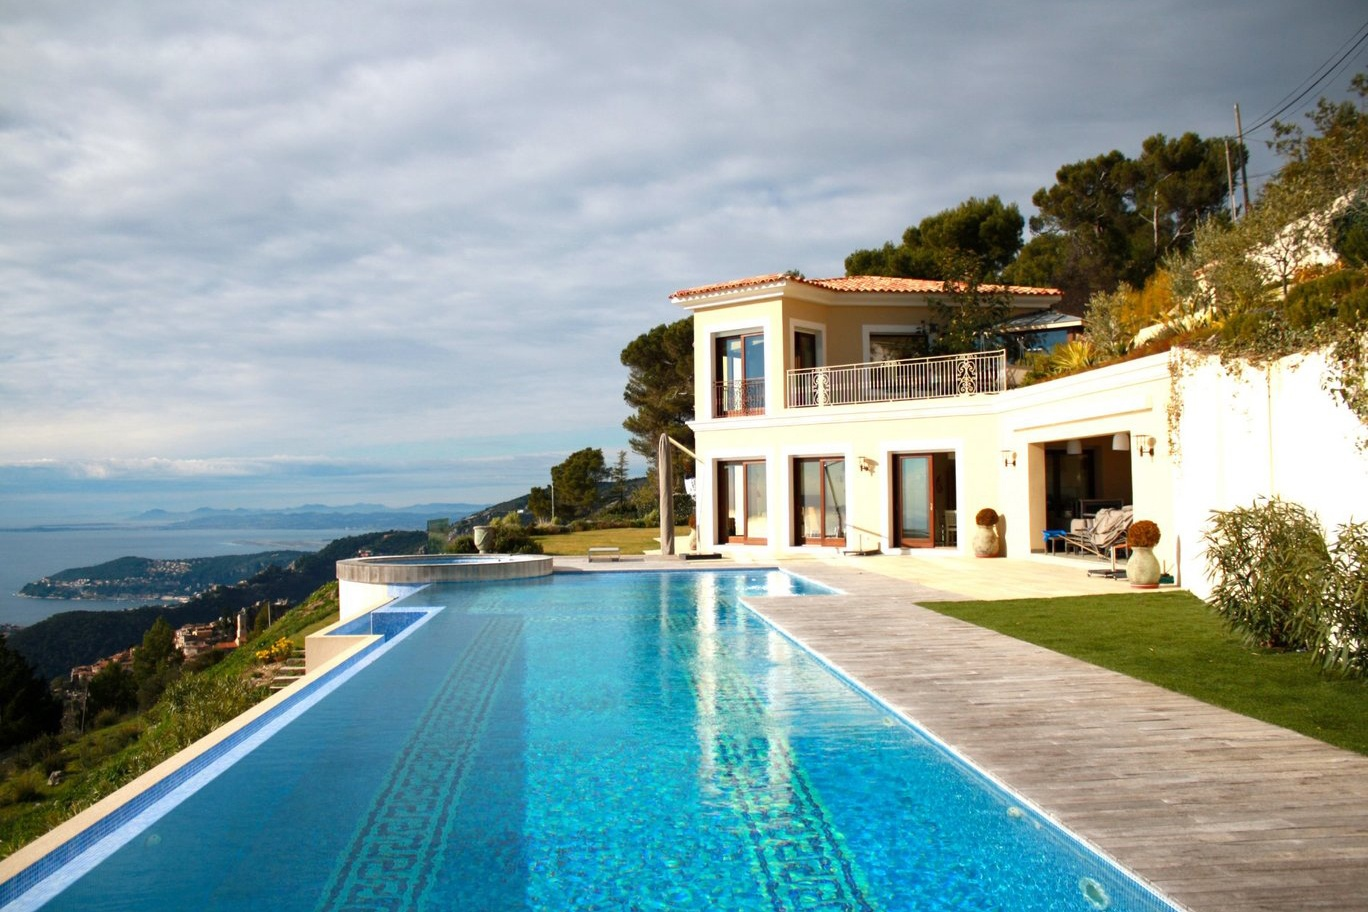 This seven-bedroom rental home on France's ultra-luxe Côte d'Azur is fully furnished and boasts spectacular views from nearly every room.